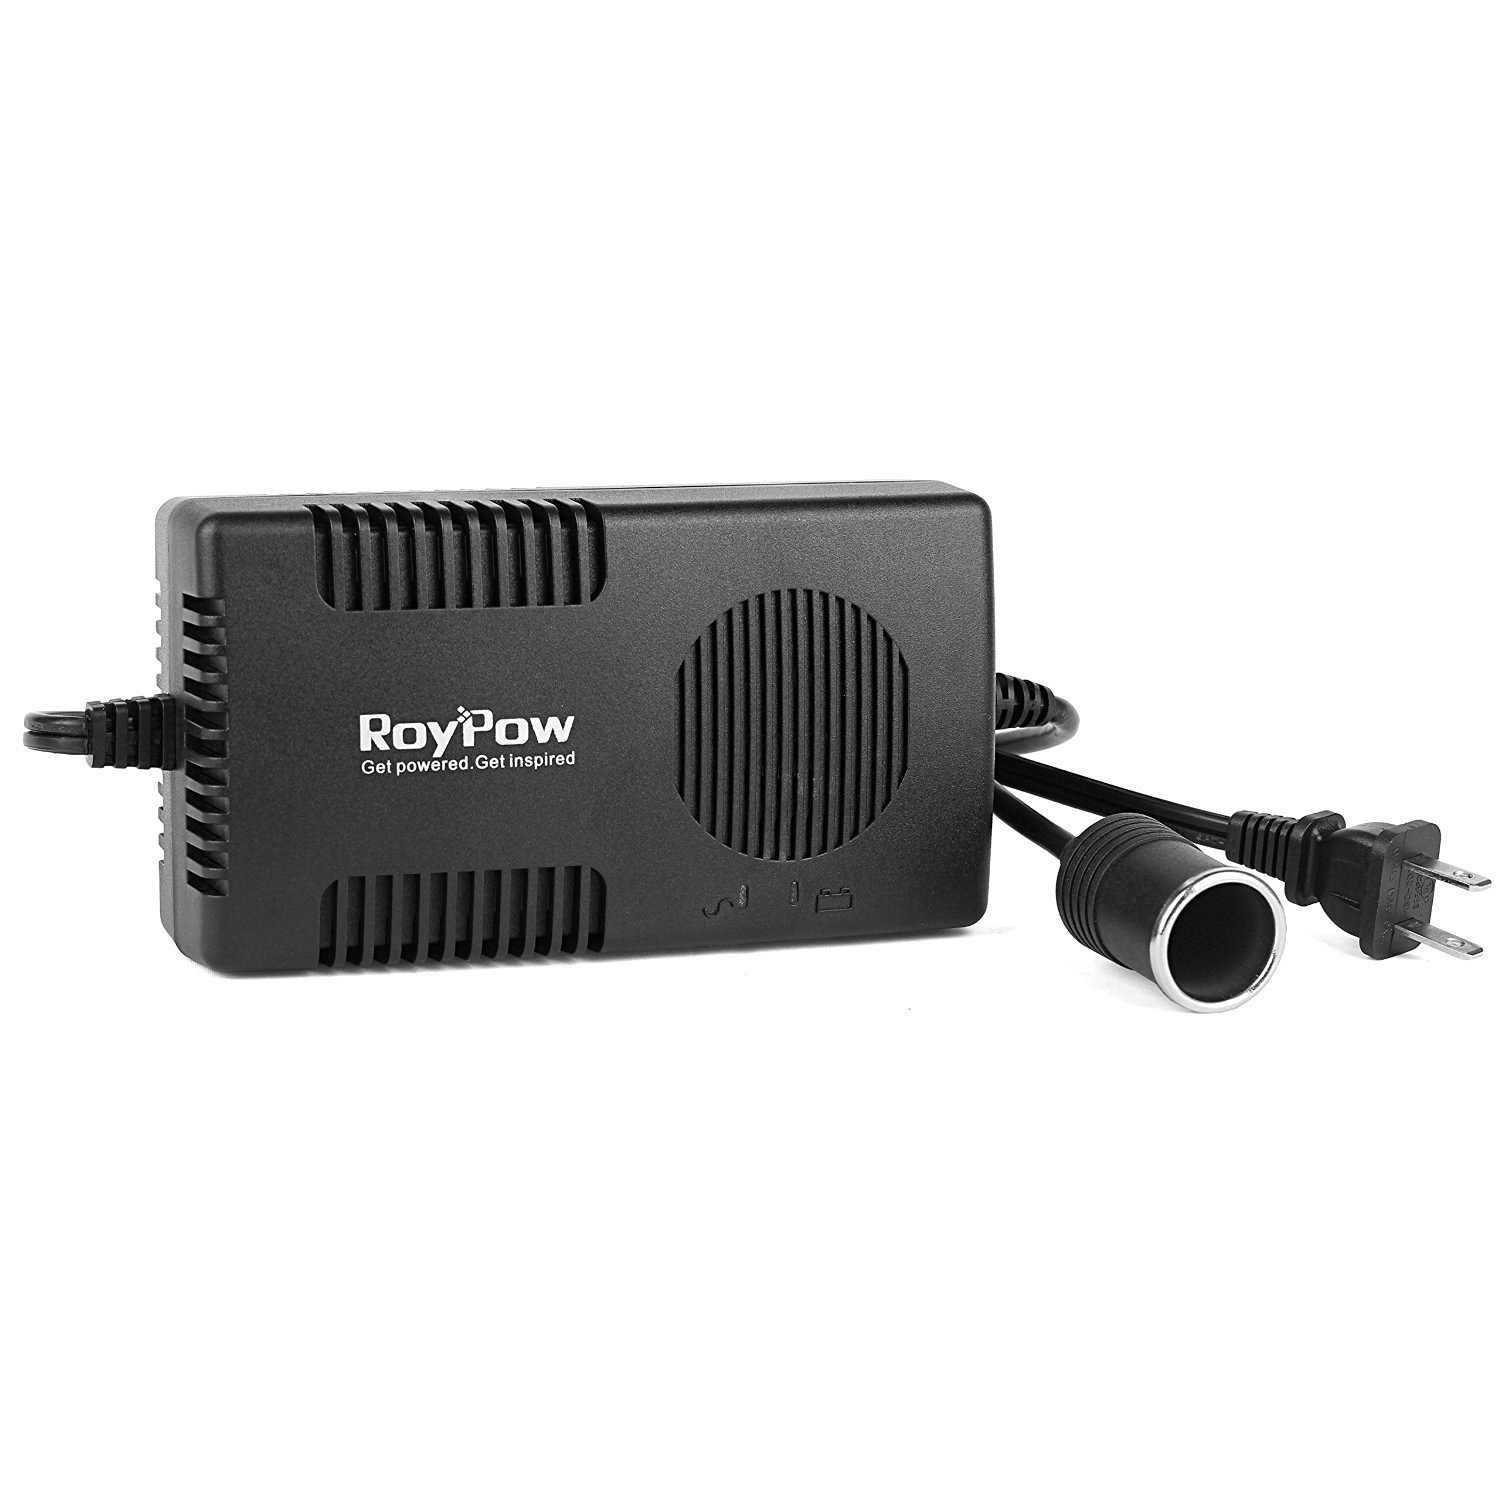 Roypow 120w Max 150w Power Supply Ac To Dc Adapter 110v